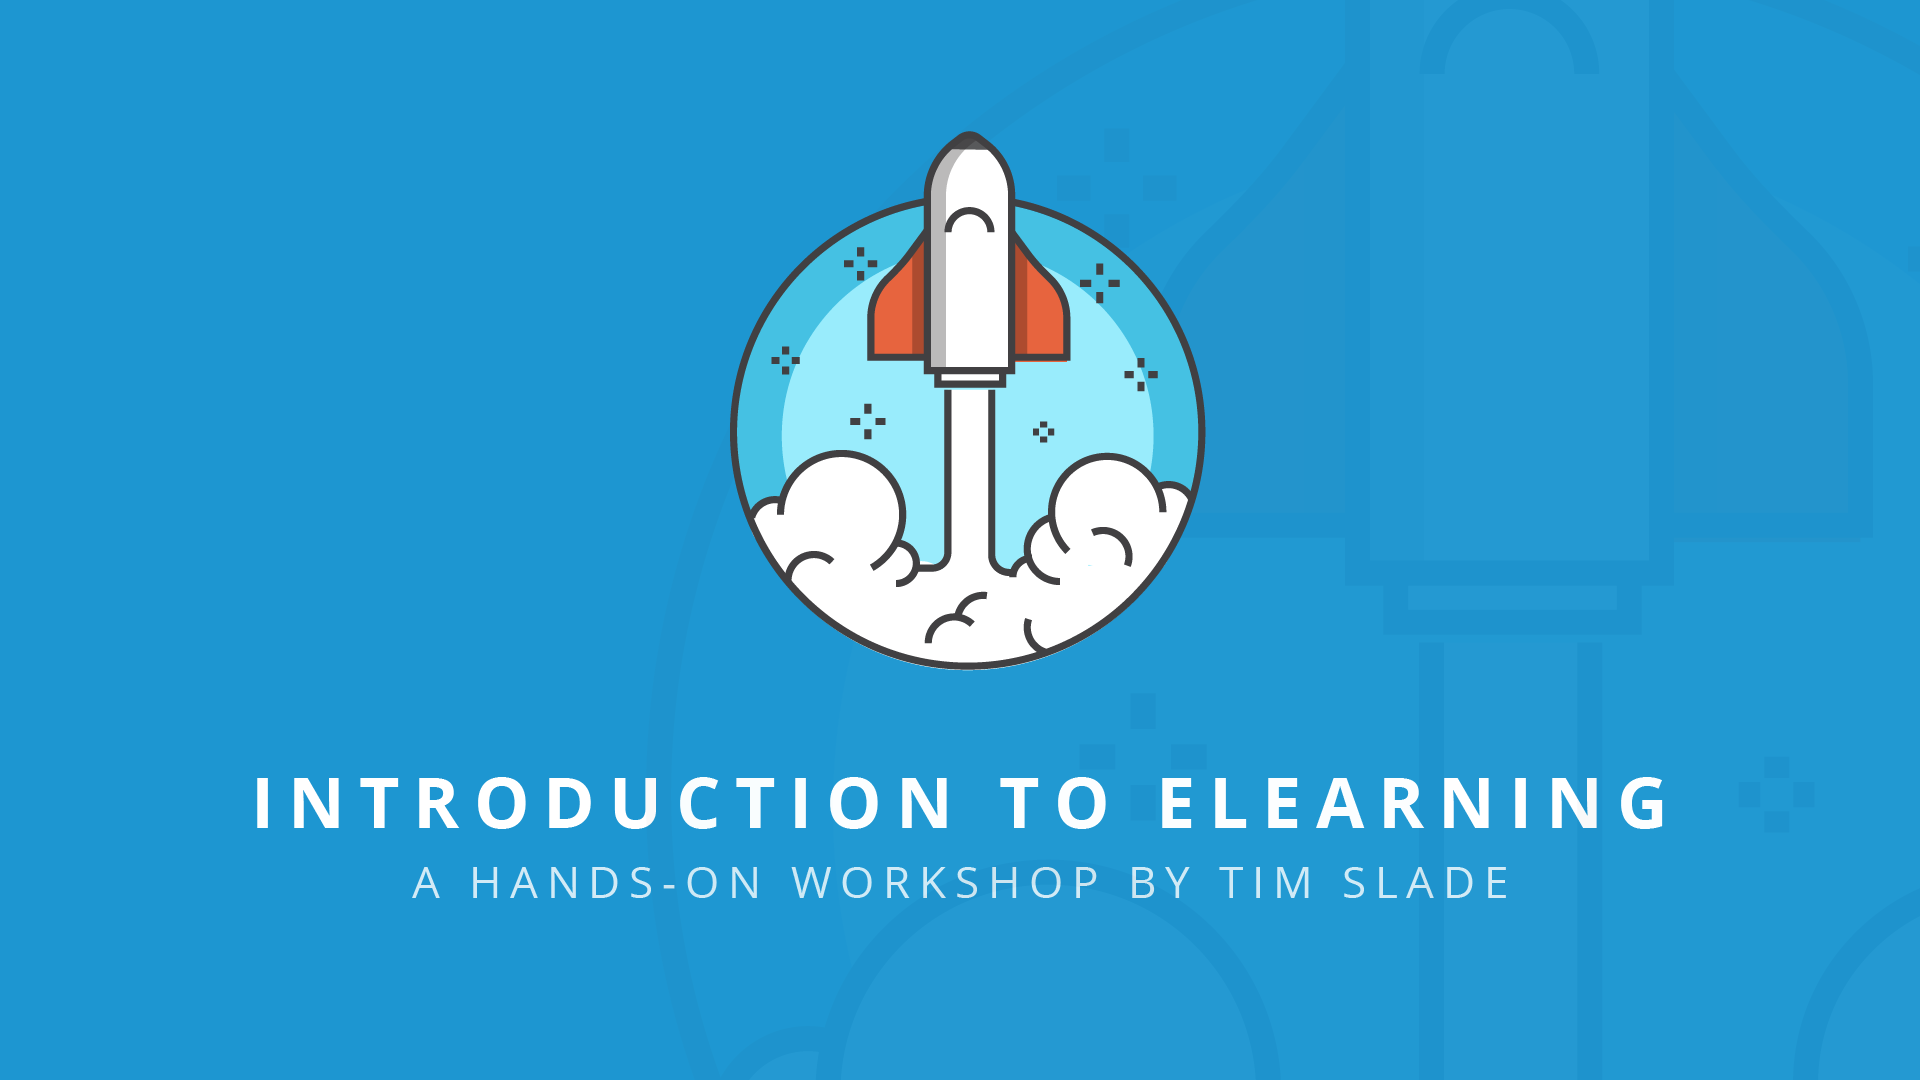 Introduction to eLearning - eLearning Workshops by Tim Slade